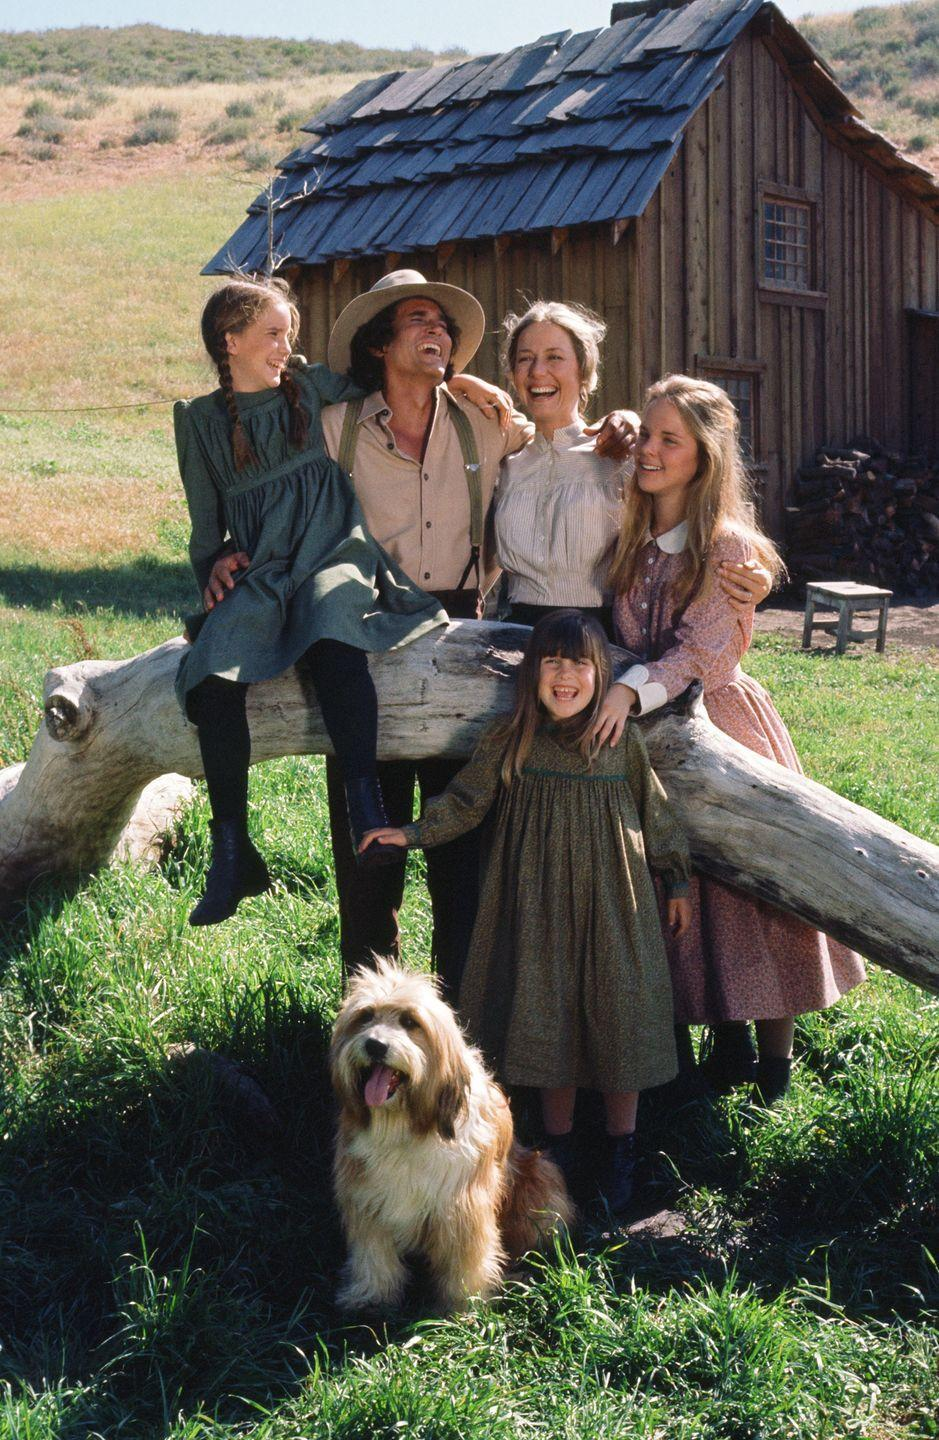 <p><strong><em>Little House on the Prairie</em><br><br></strong>This family drama, set in Walnut Grove, Minnesota and based on the books of the same name, was mandatory TV for kids growing up in the '70s. </p>